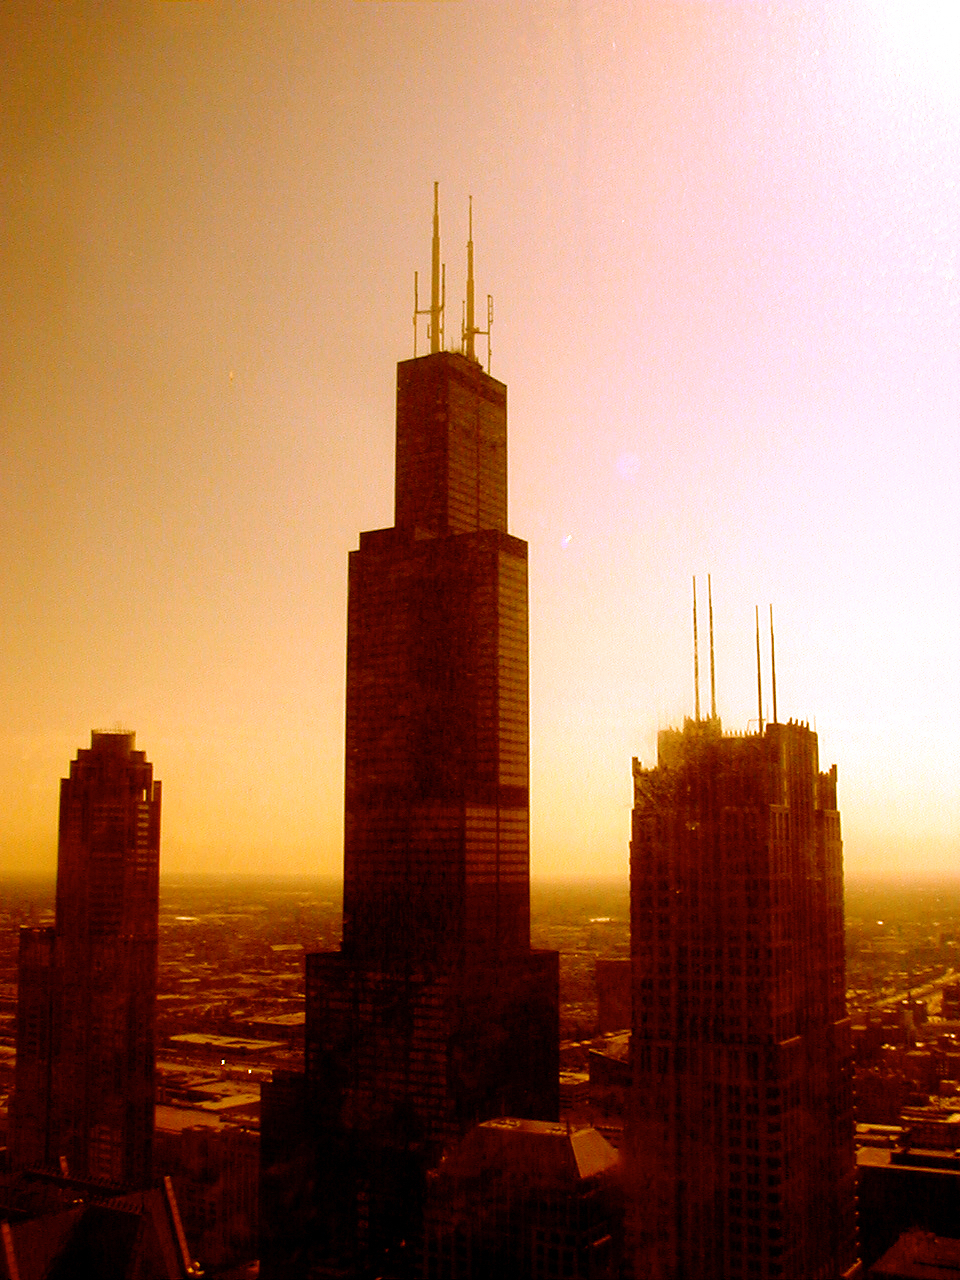 56 Stories Up (Sears Tower), digitally enhanced photograph, 2003